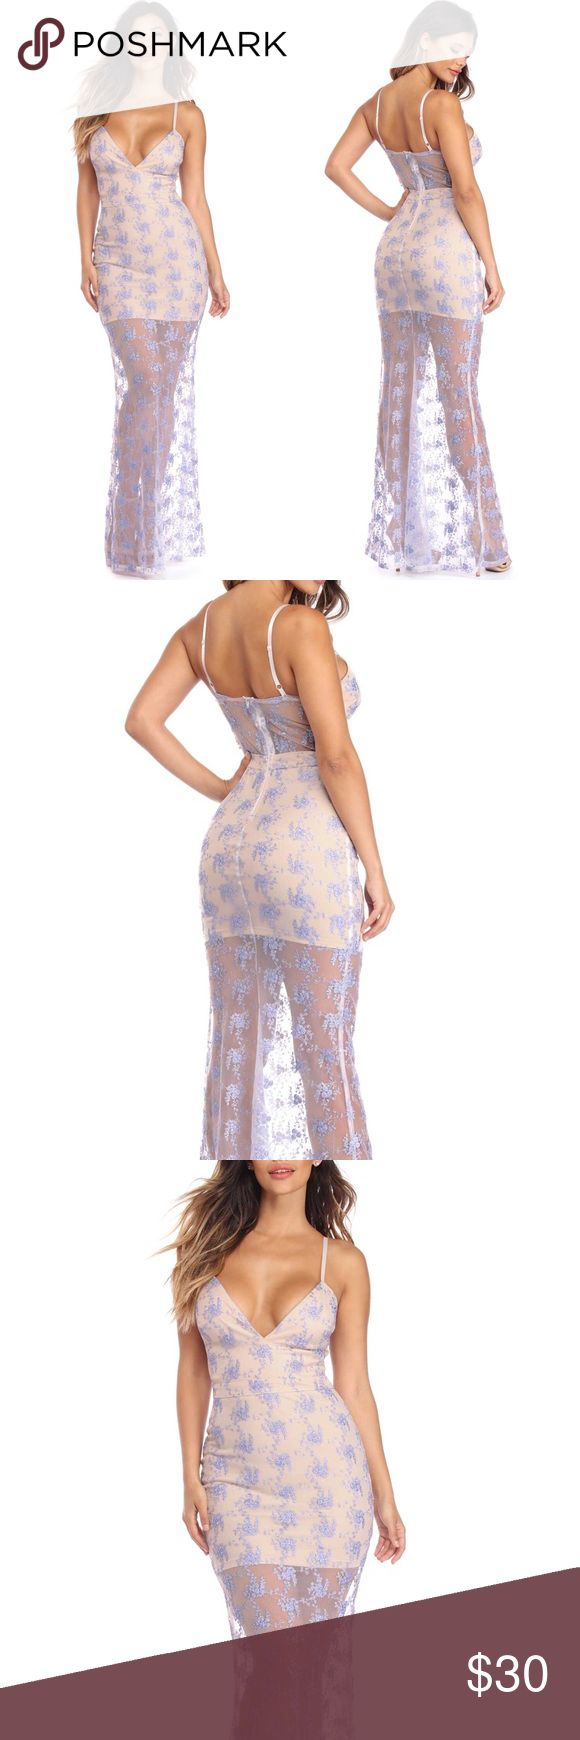 """STUNNING Embroidered Formal Dress STUNNING Composed of a delicate mesh fabric that features lavender embroidery throughout and has a sheath silhouette complete with a plunging V neckline and adjustable spaghetti straps. Perfect for any special event coming up!! True to size. Head turner! 🔥 Perfect as a PROM DRESS, HOMECOMING DRESS, GRADUATION DRESS, FORMAL EVENT.  Approx. 55"""" side seam (Measured from underarm to hem of garment.) 100% Polyester Windsor Dresses"""